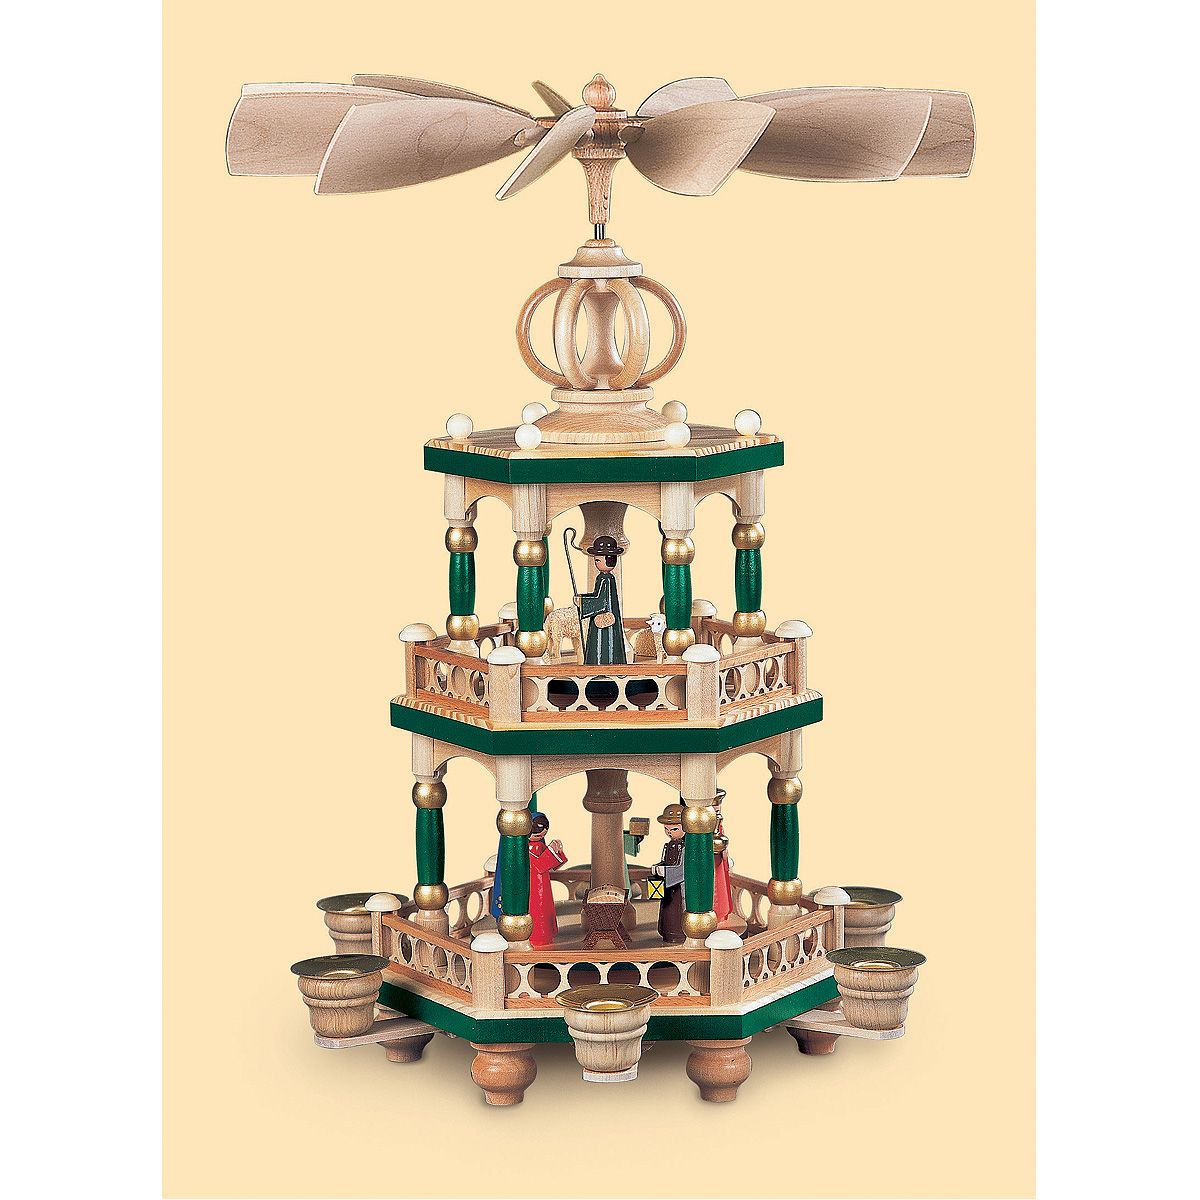 Christmas decoration with candles that spins - German Christmas Pyramid Christmas Story Height 42 Cm 17 Inch Hand Painted Original Erzgebirge By Mueller Seiffen From M Ller Seiffen